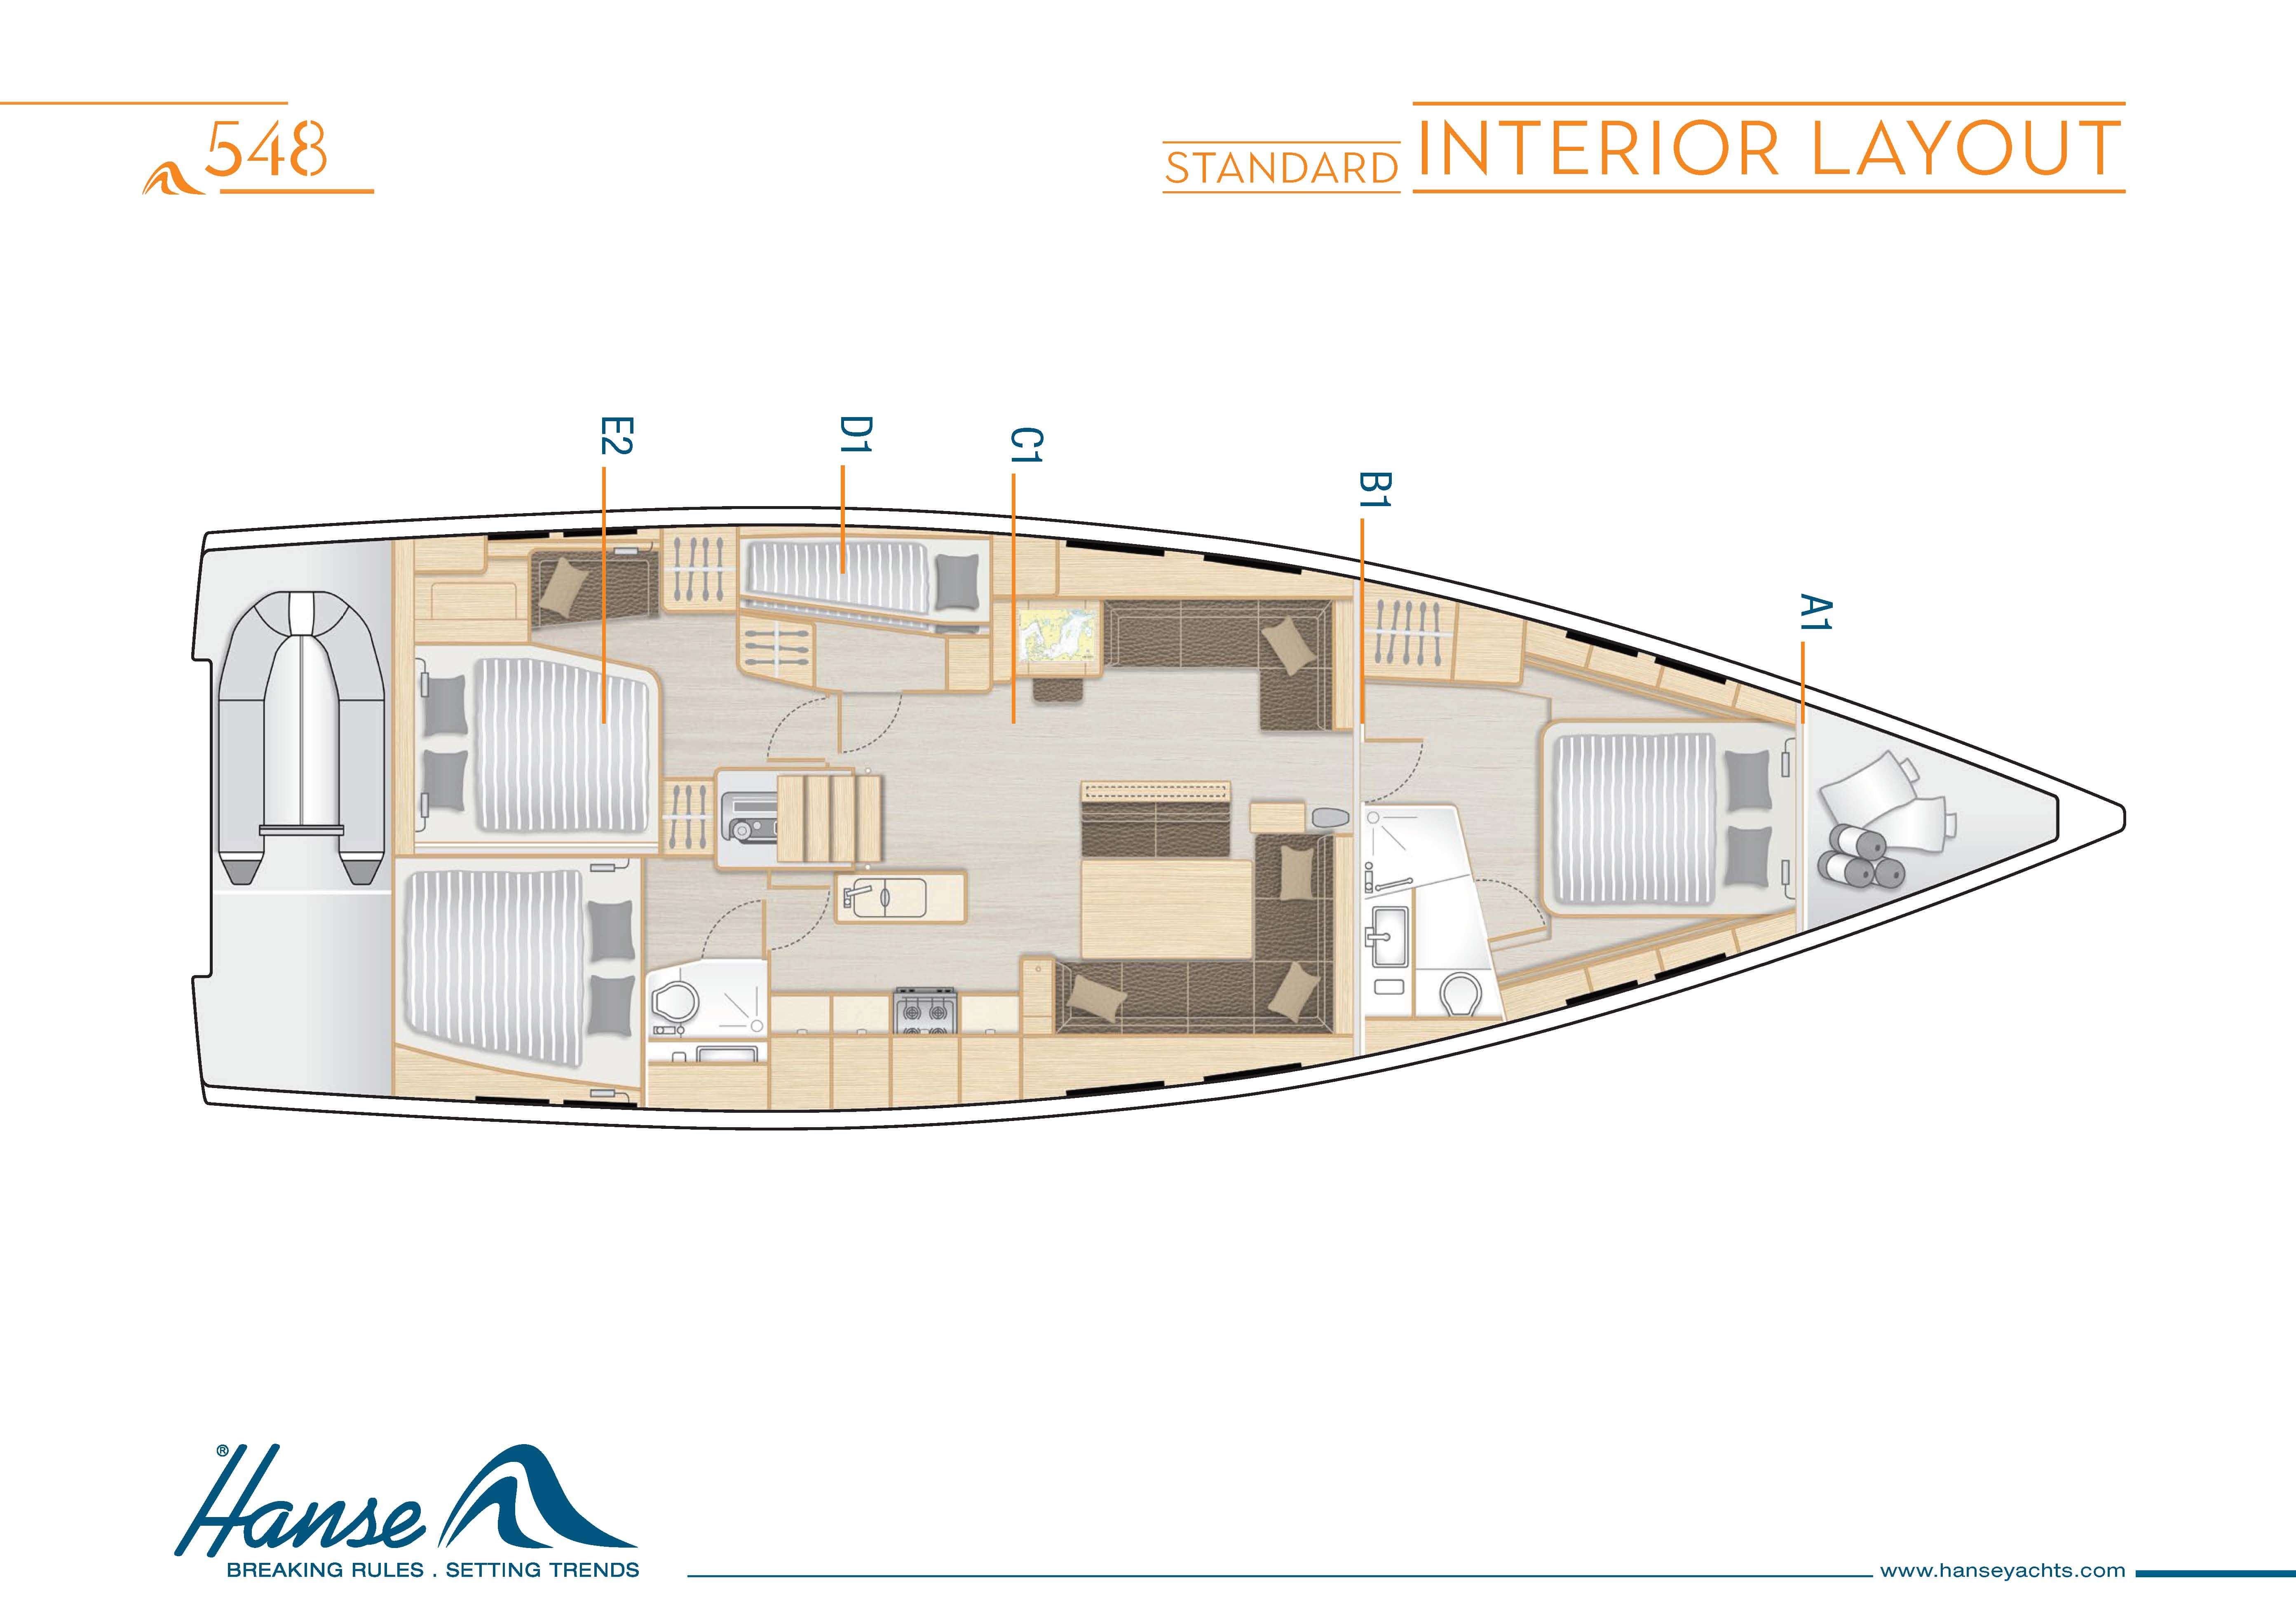 Hanse_548_Interior_Layout_A1_B1_C1_D1_E2